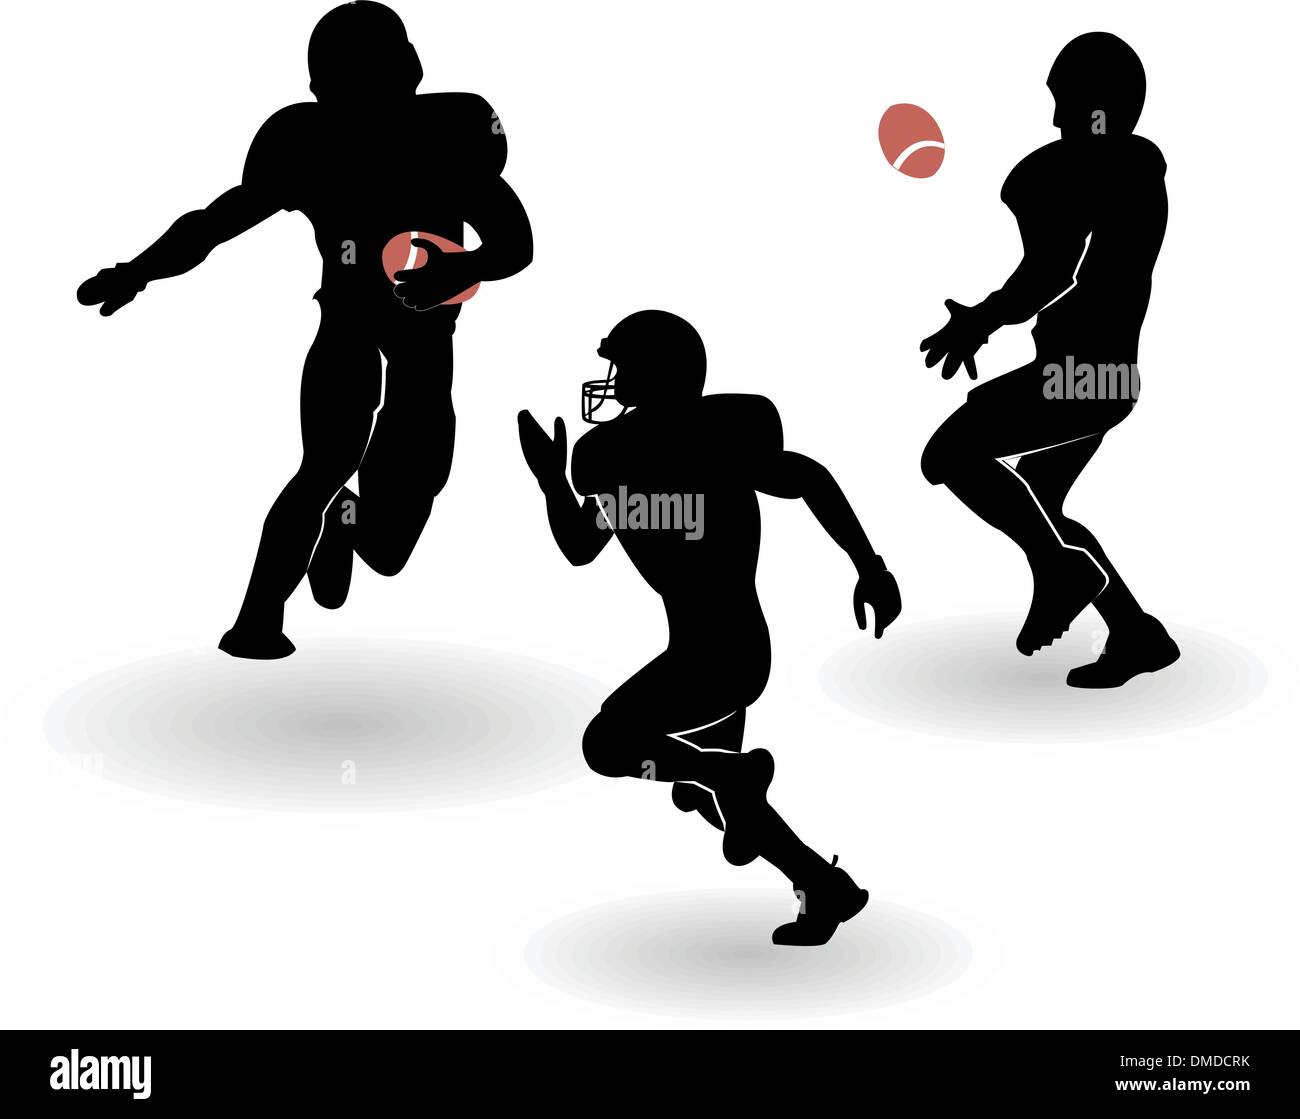 the vector american football silhouettes set - Stock Image